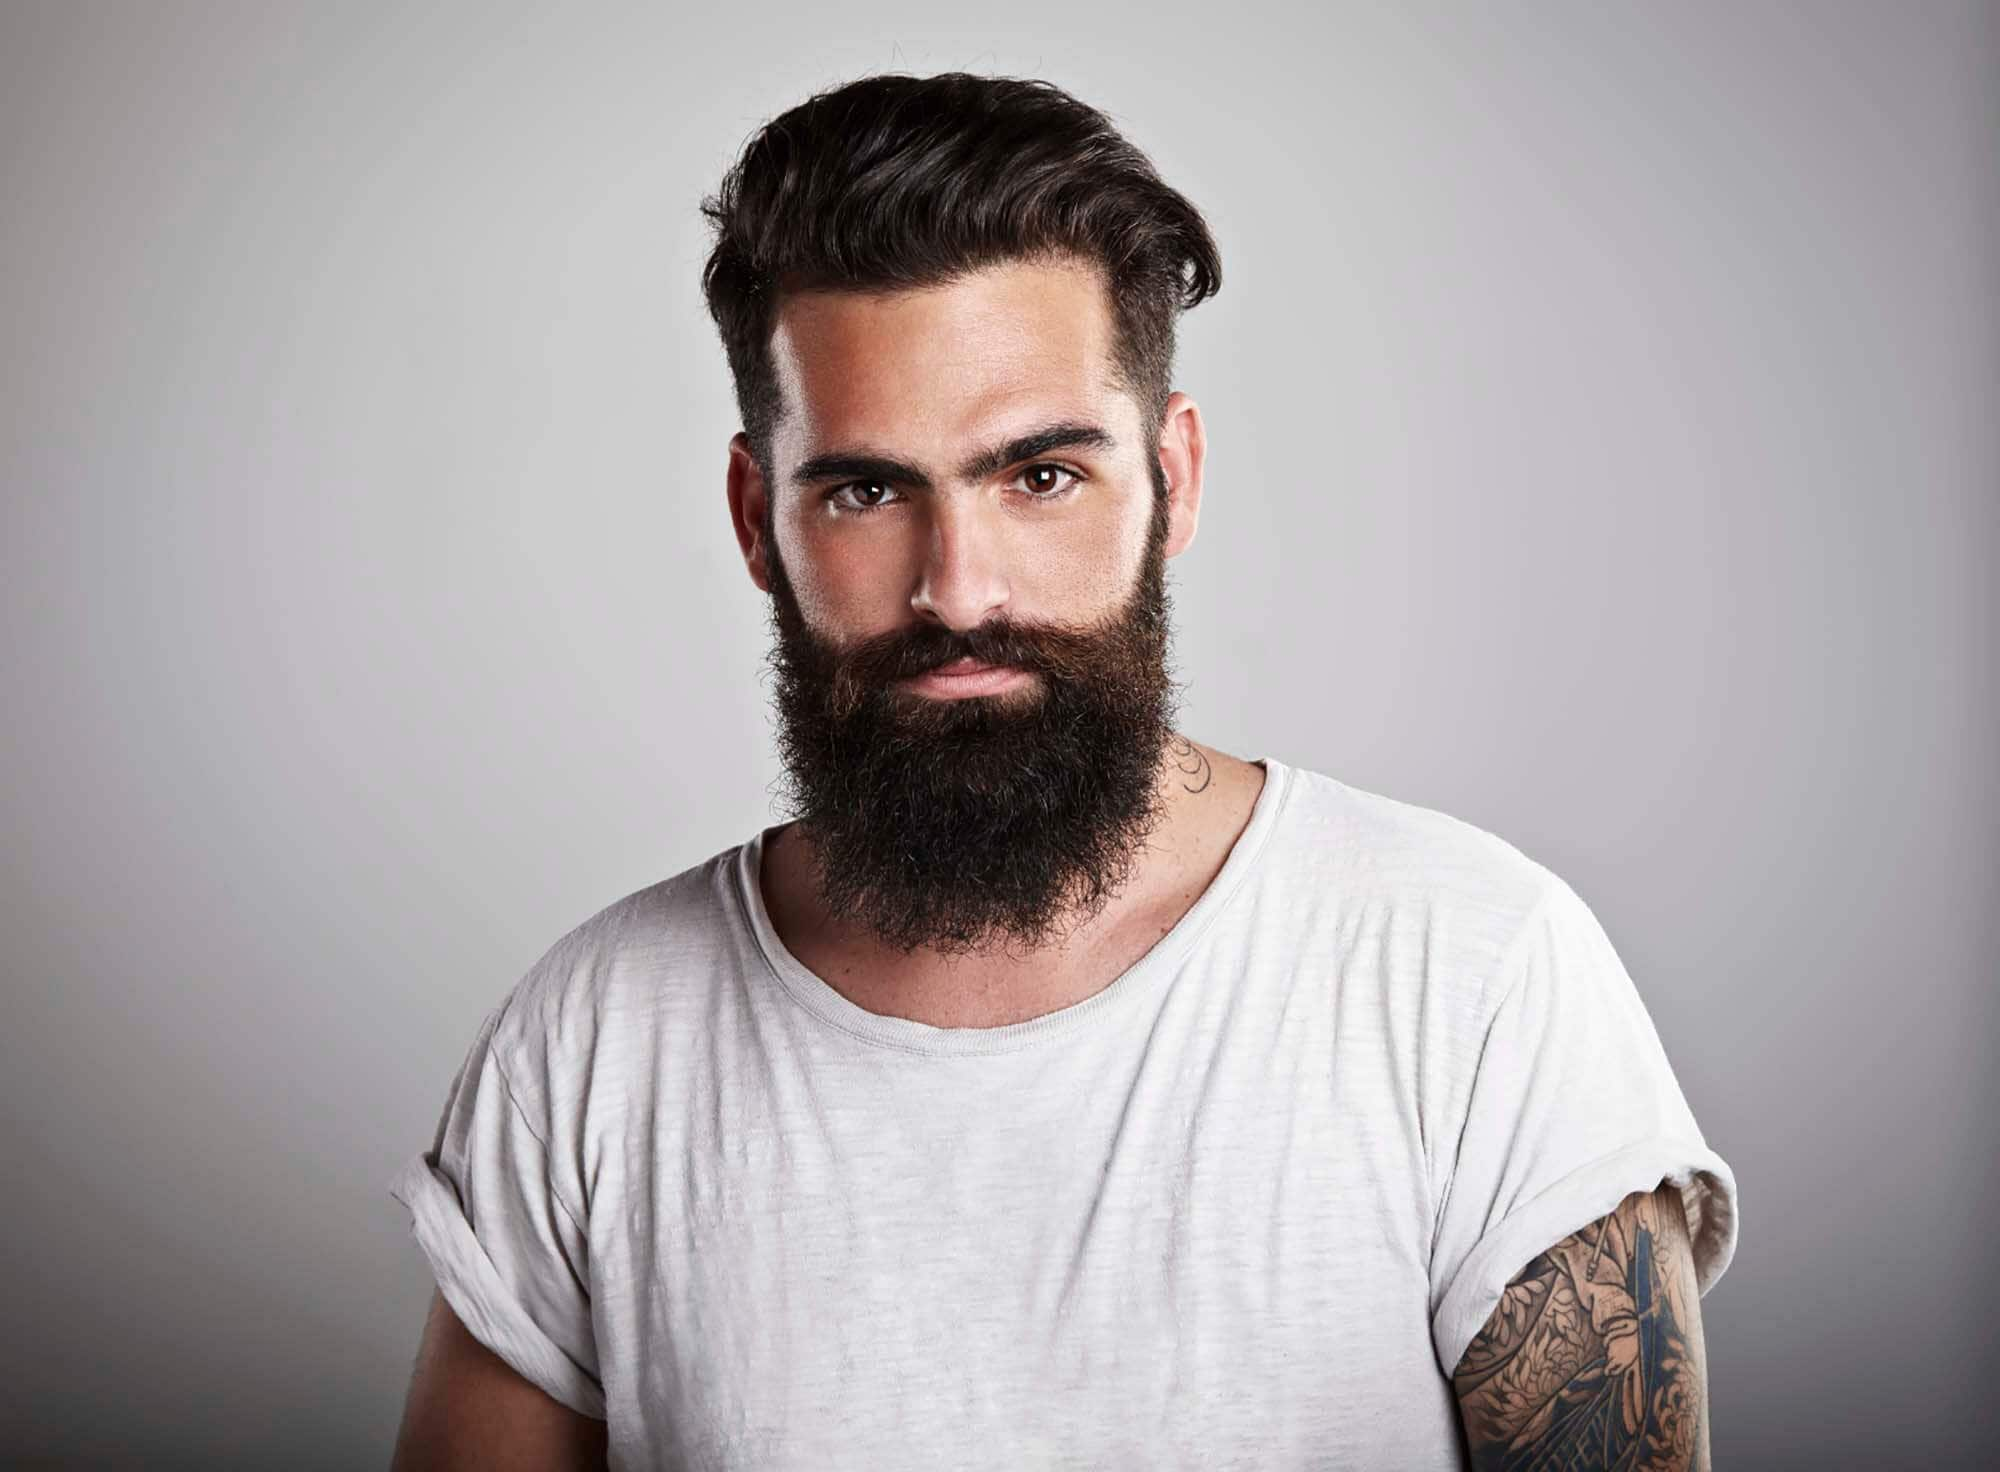 undercut hairstyle: dark haired man with beard